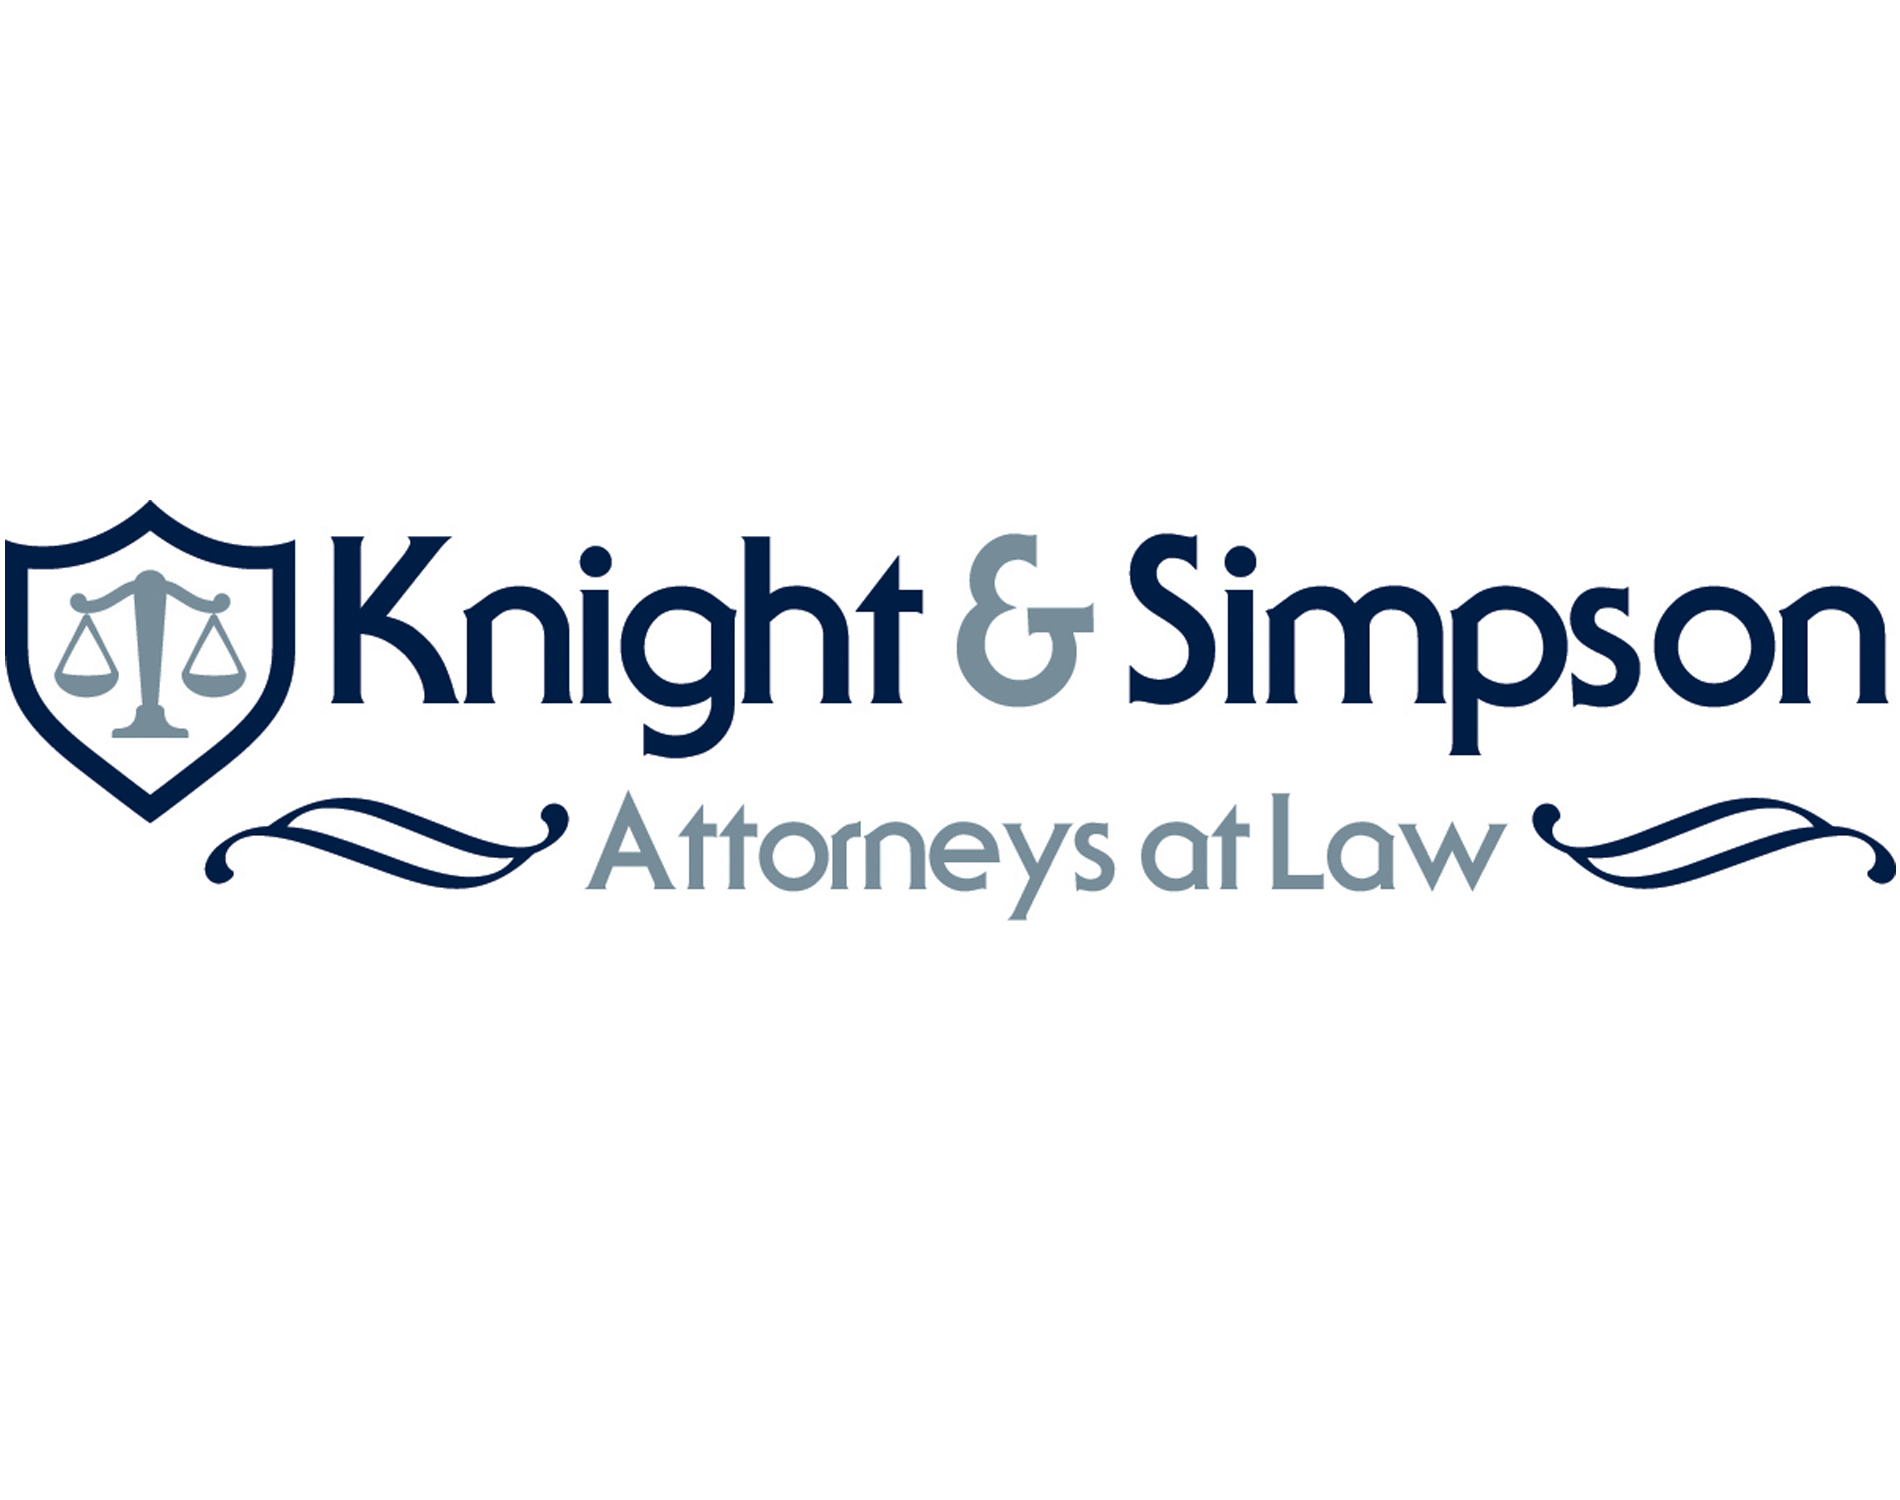 - Knight & Simpson have been sponsoring our efforts since 2015. We are thankful for their support again this year!